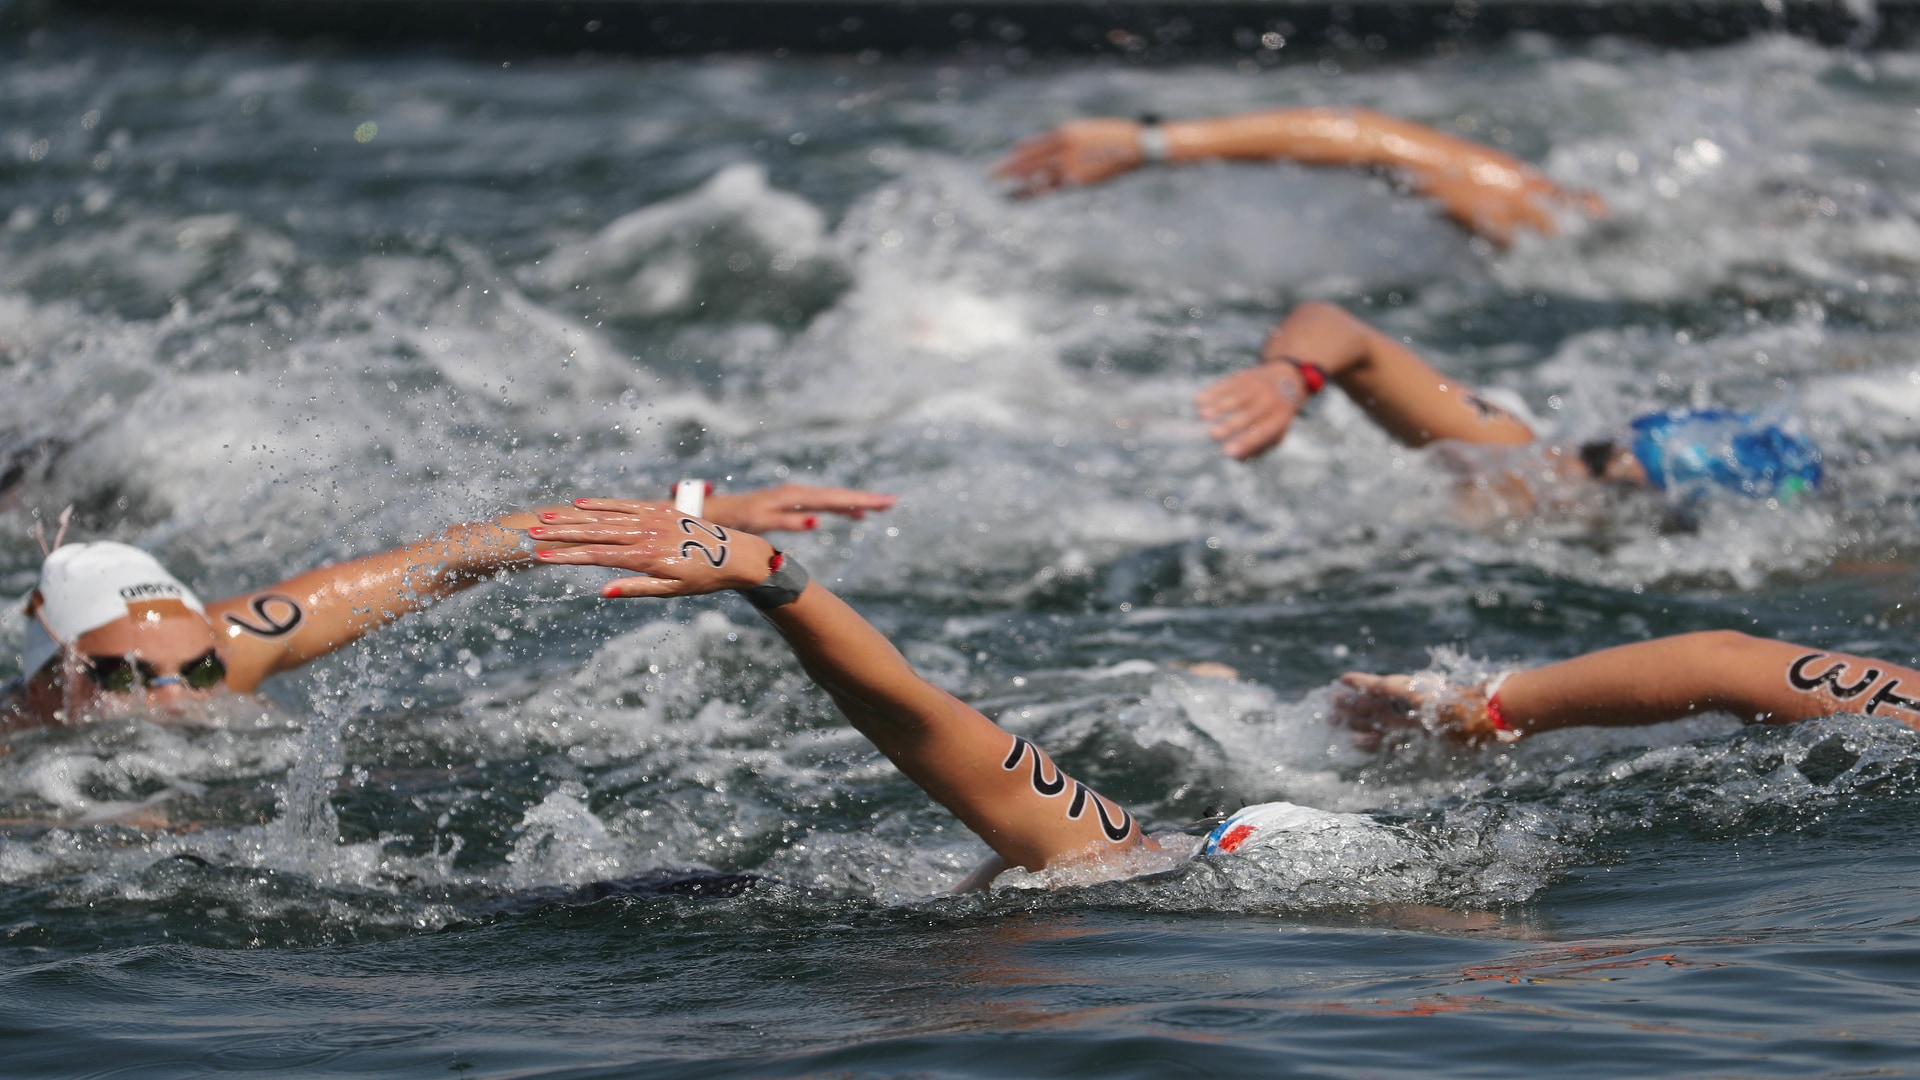 Image for Brazil's Ana Marcela Cunha takes open-water swimming gold